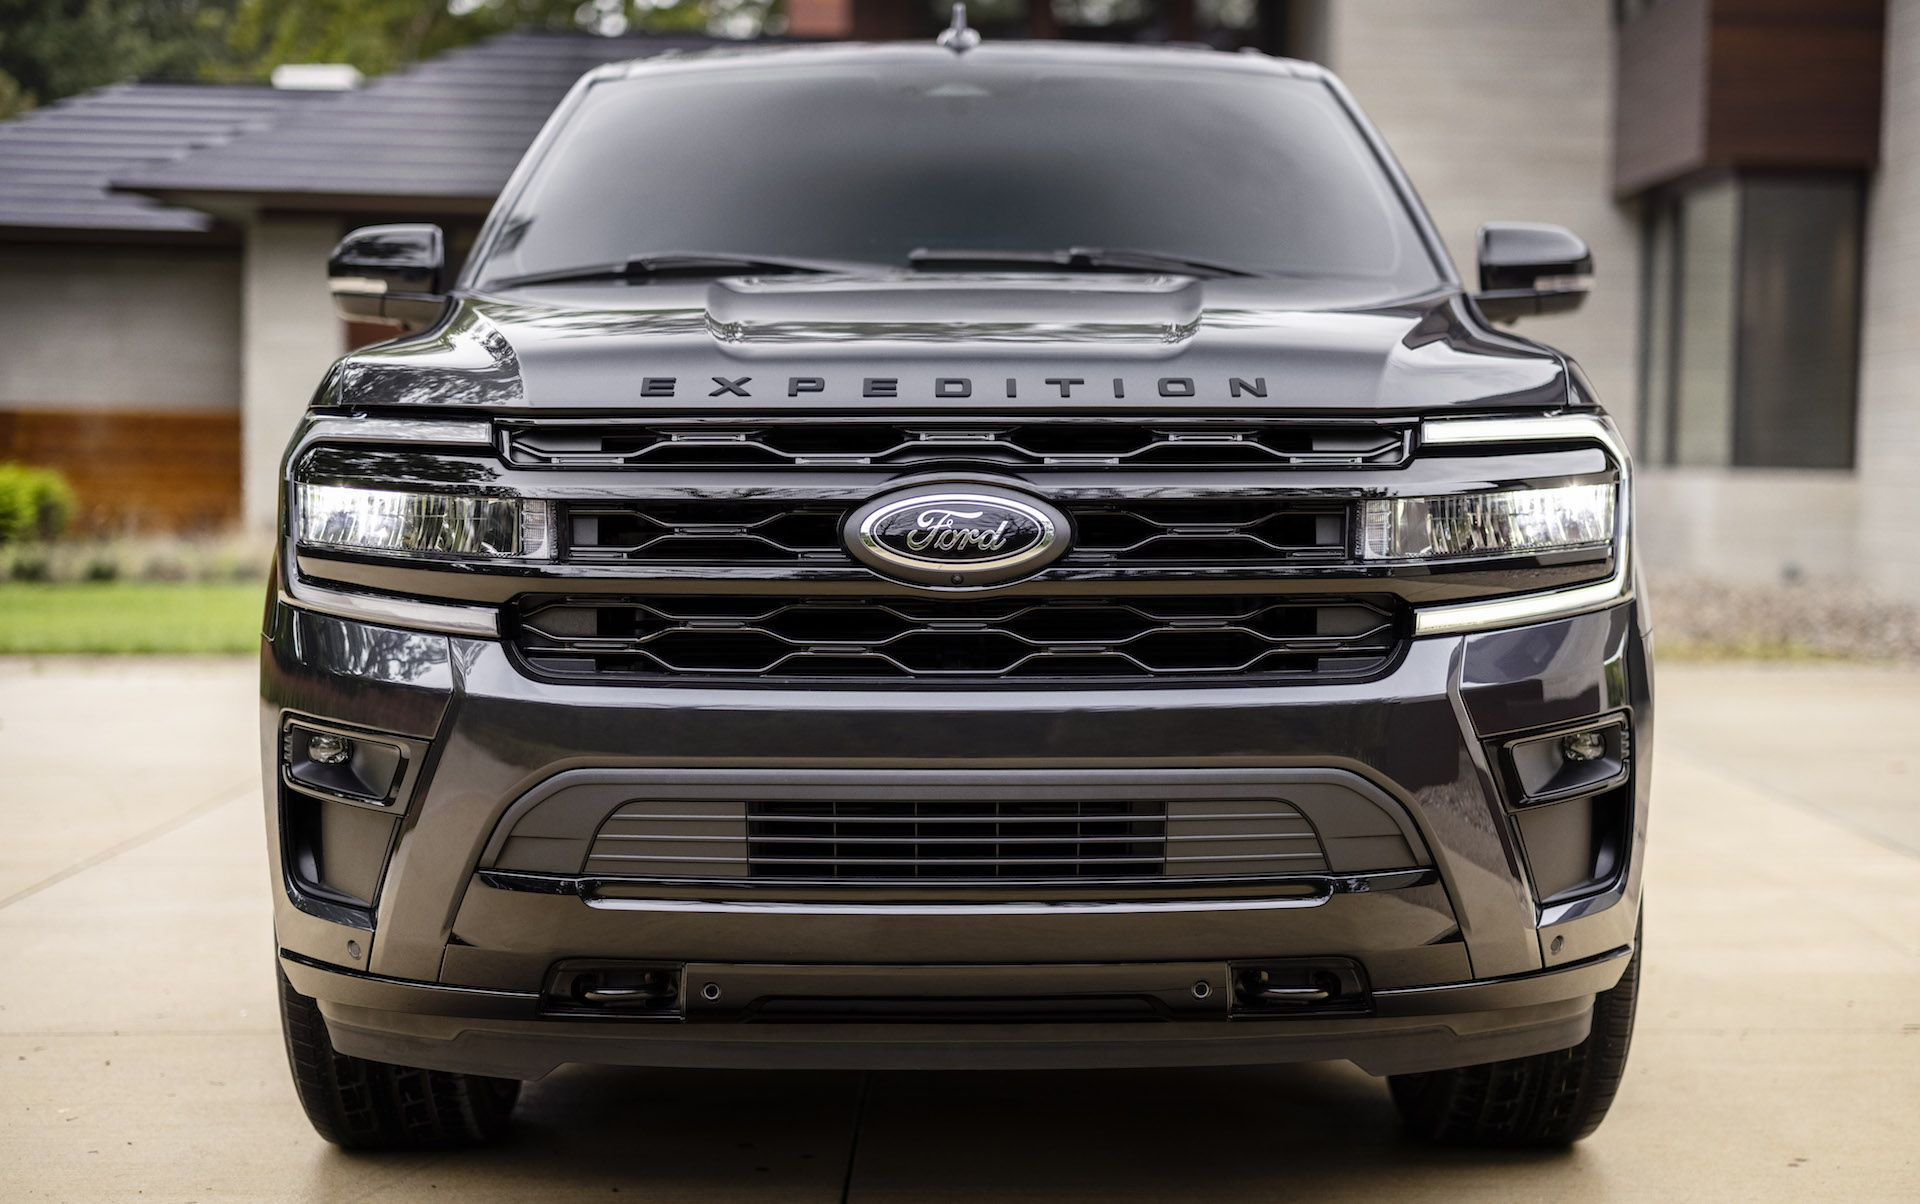 2022-Ford-Expedition-Stealth-00019-1